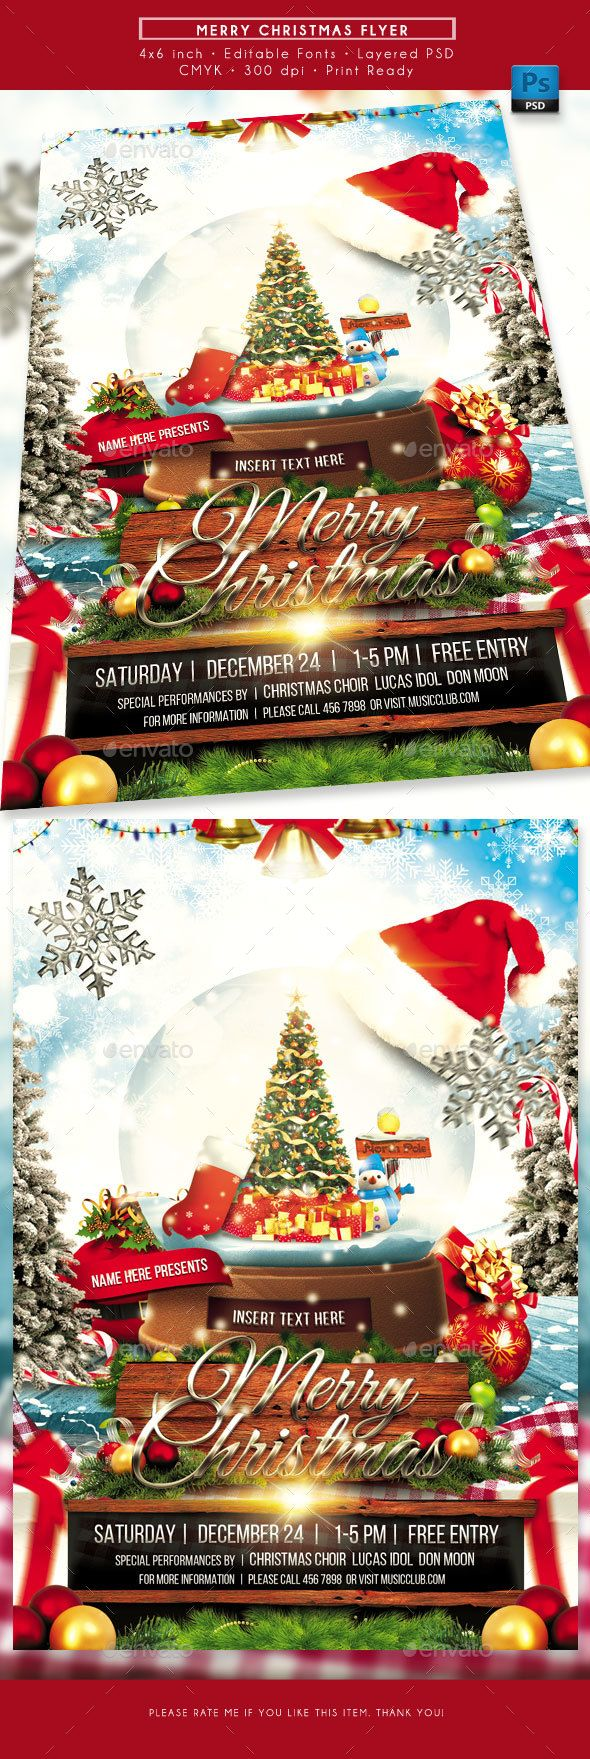 Merry Christmas Flyer Christmas Flyer Party Flyer And Flyer Template